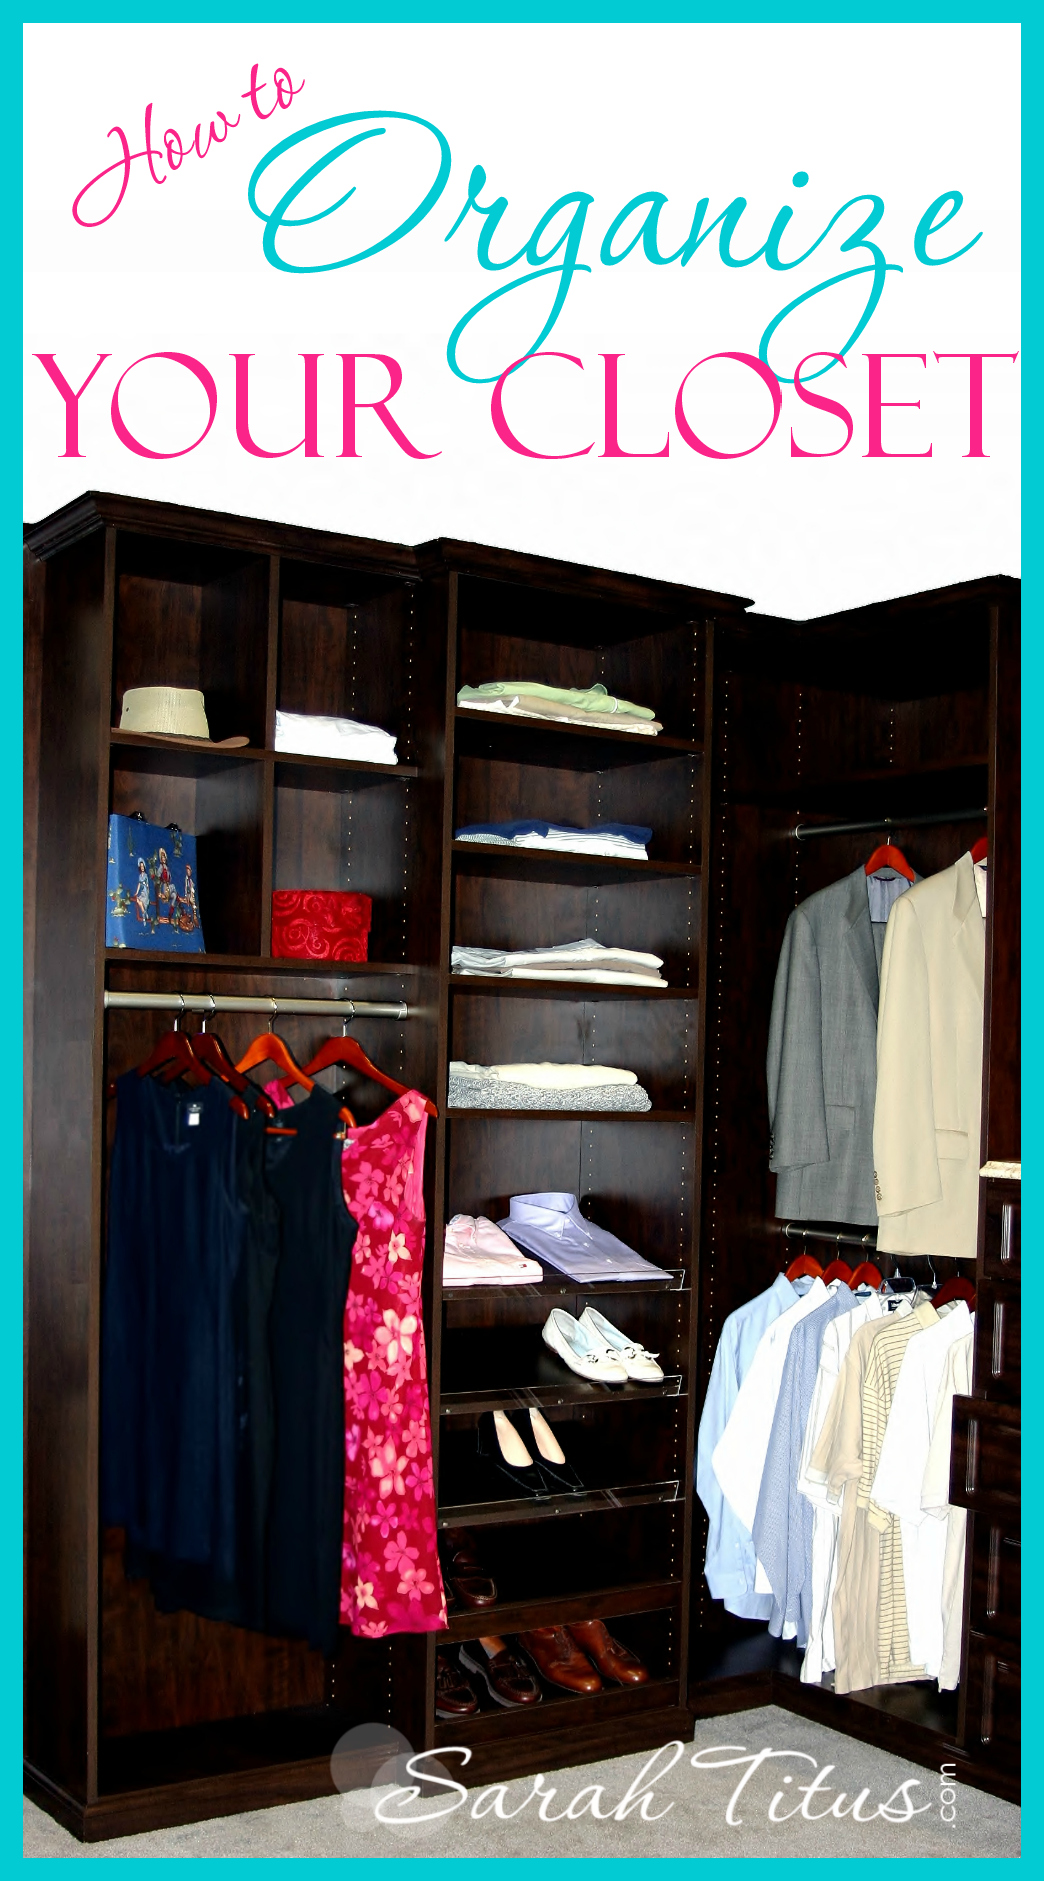 Organize clean archives page 6 of 8 sarah titus for How to clean and organize your closet